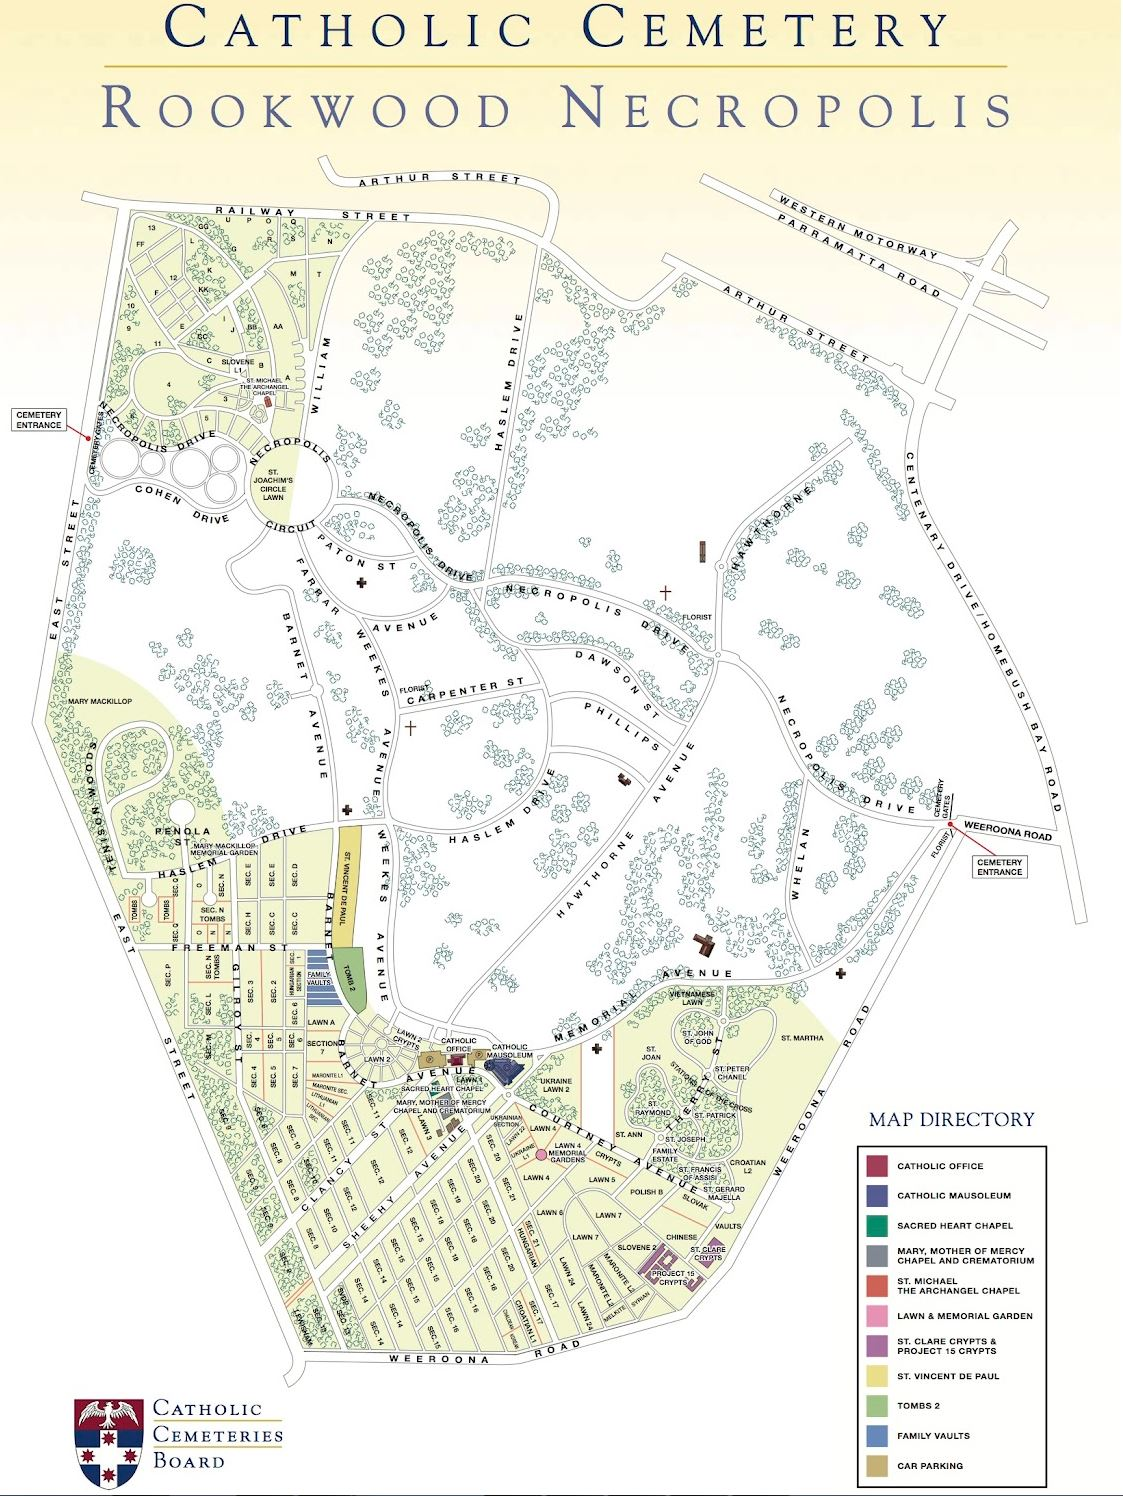 Rookwood Cemetery Map Rookwood Catholic Cemeteries and Crematoria in Rookwood, New South  Rookwood Cemetery Map